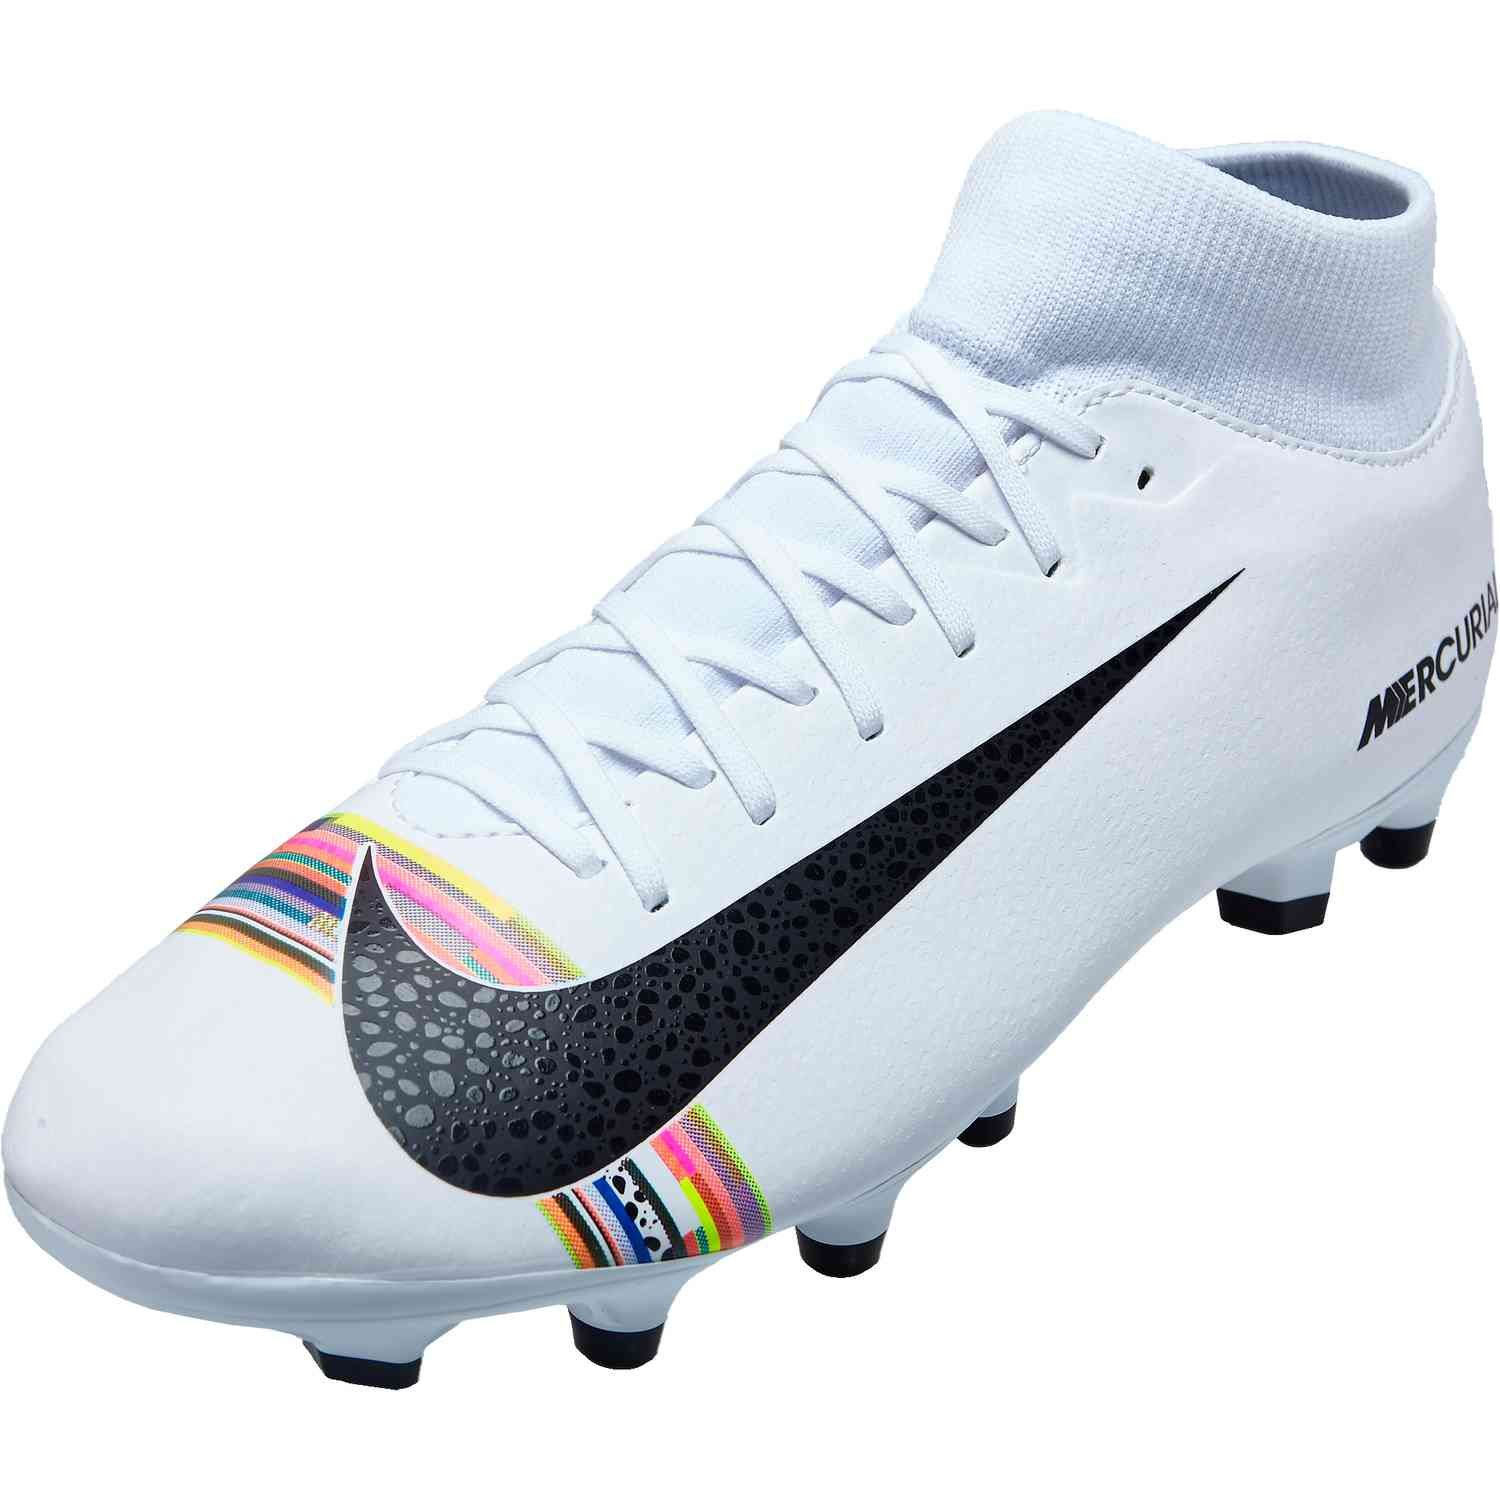 Nike Mercurial Superfly 6 Academy Fg Level Up Soccerpro Best Soccer Cleats Nike Soccer Shoes Soccer Cleats Nike